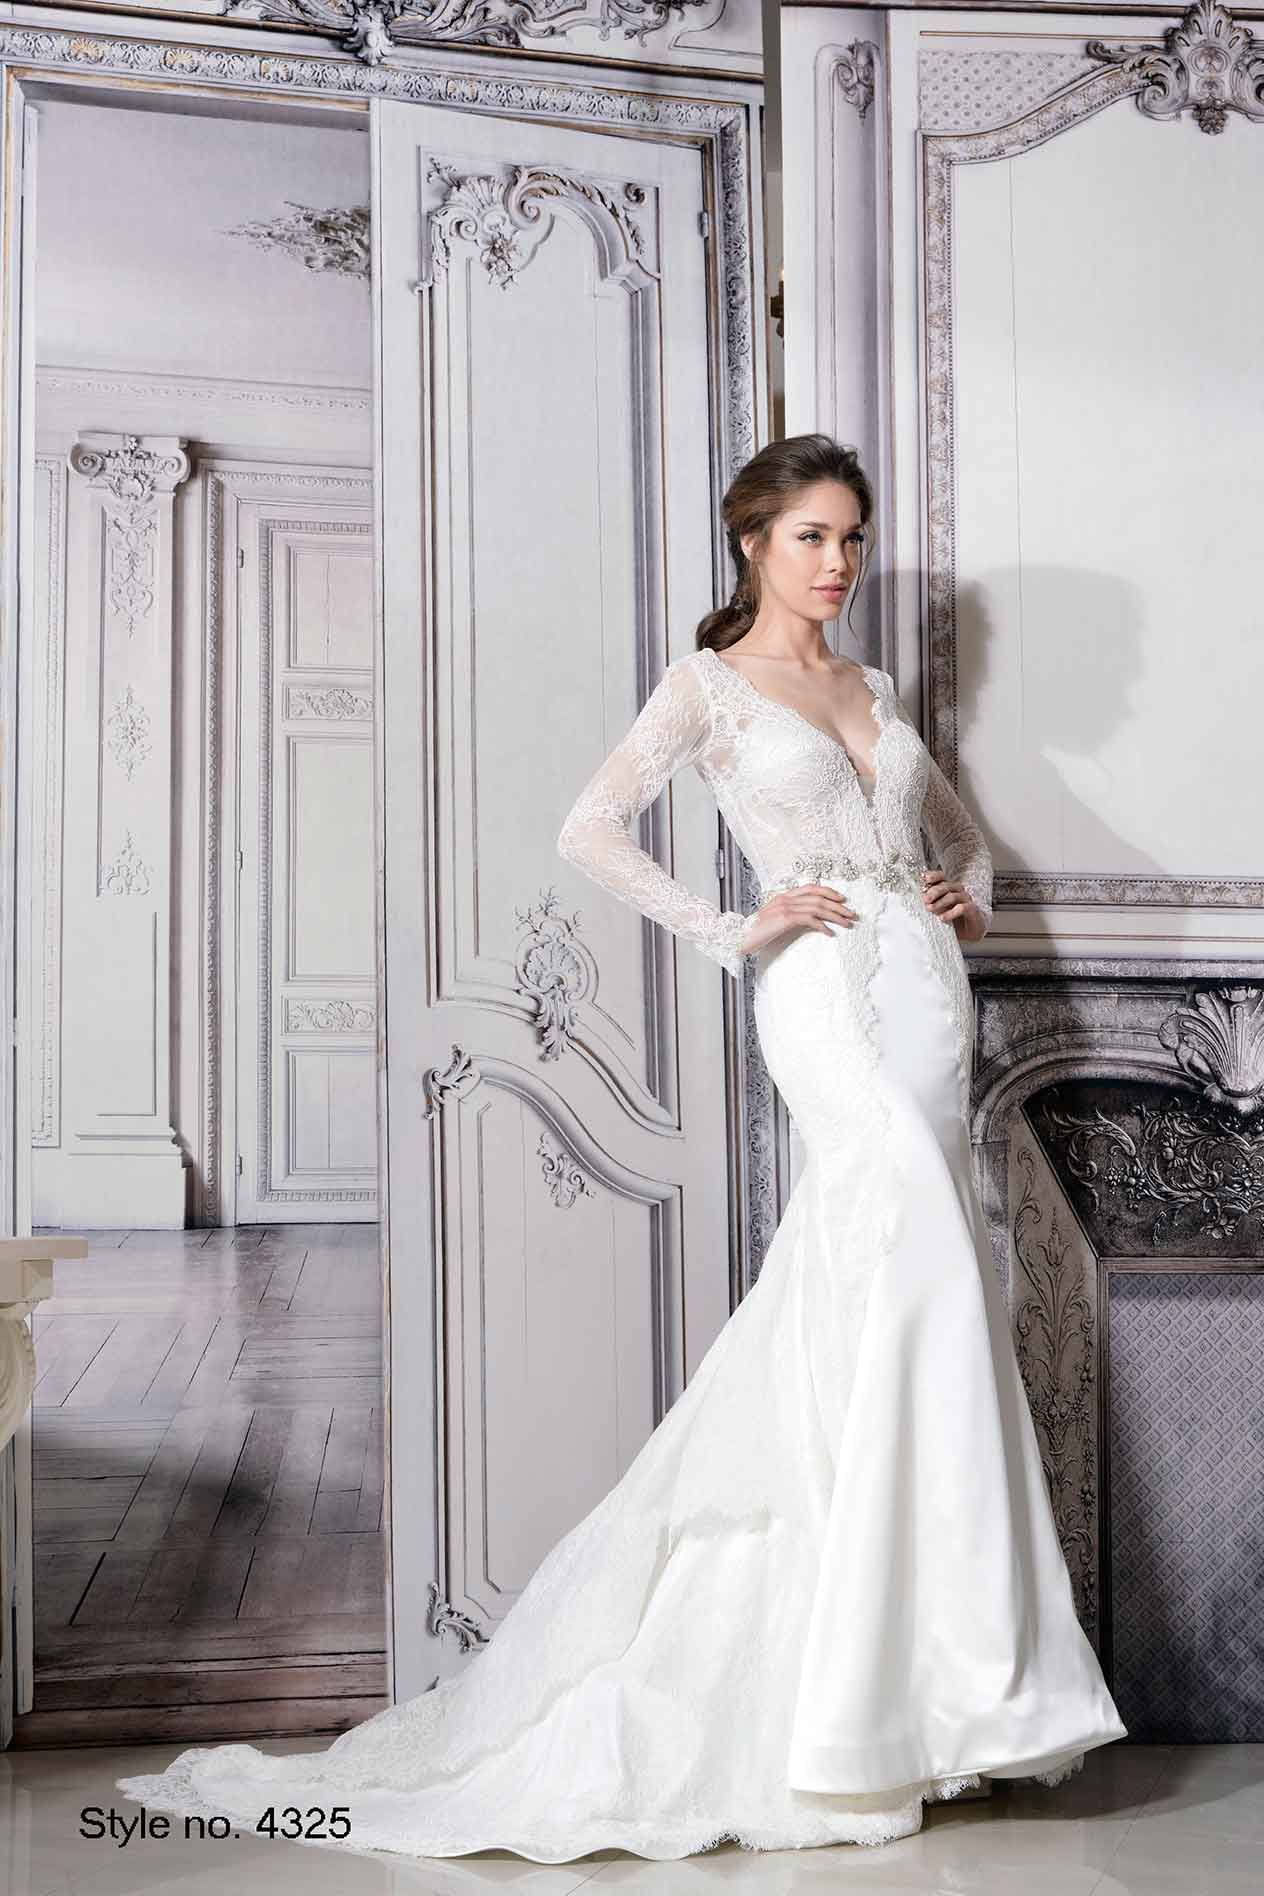 Pnina Tornai Style 4325  pninatornai but minus the sleeves! Like the  silhouette Bridal Gown 141a4363b3f9